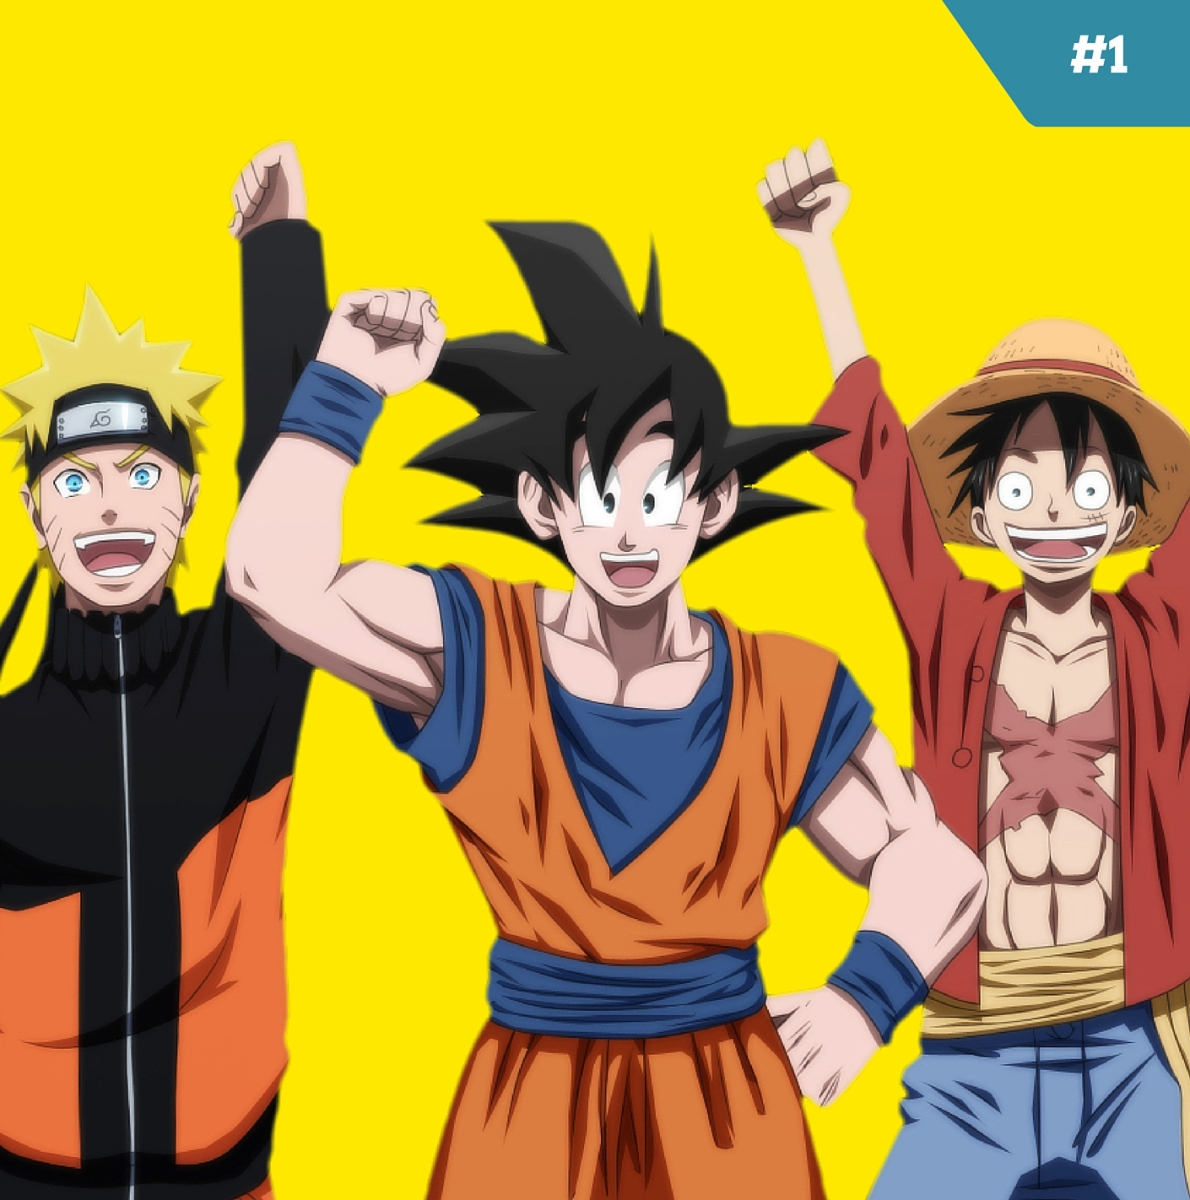 The All About Series #1: Anime & Manga